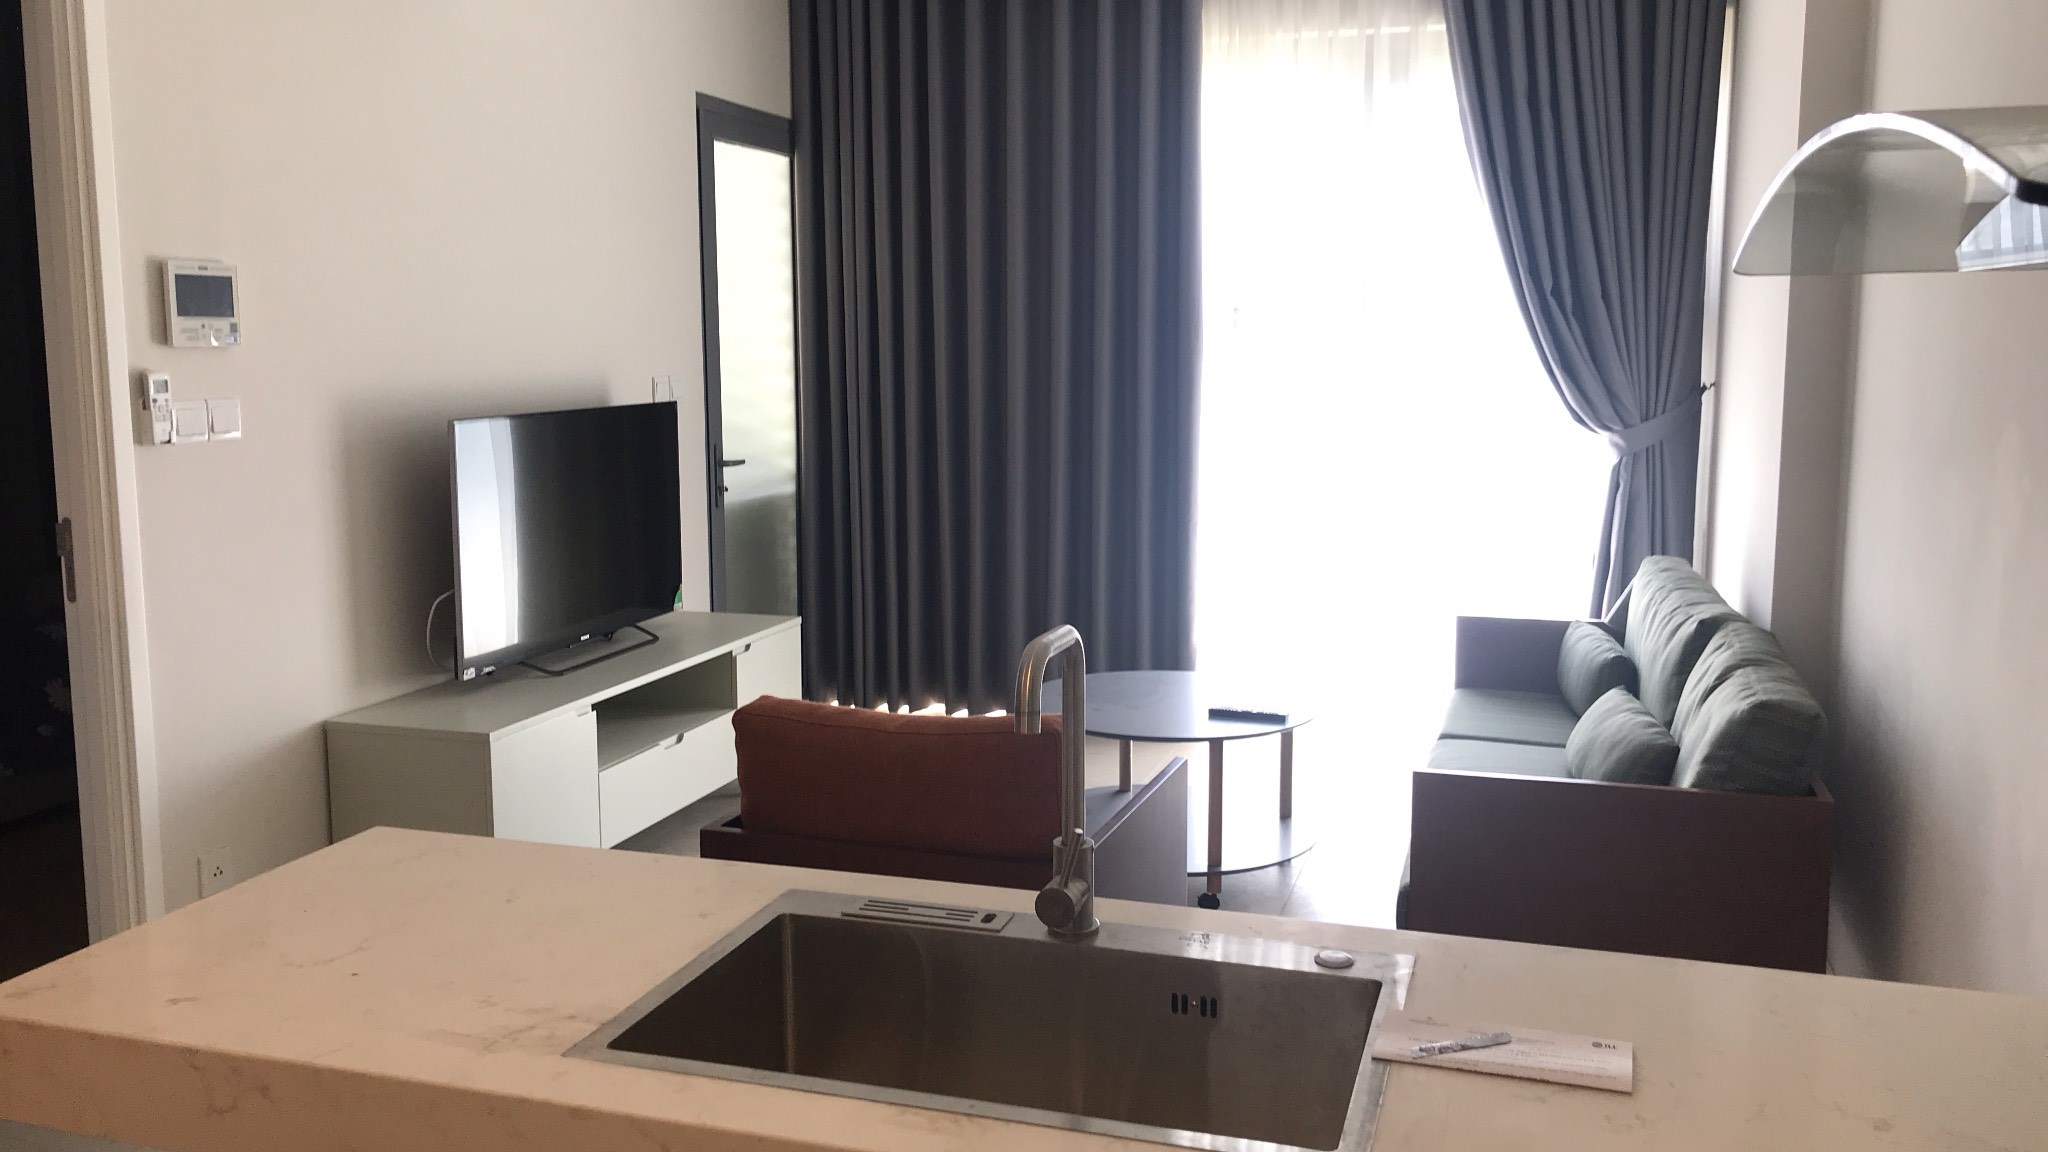 DI0913 - Diamond Island Apartment For Rent & Sale in Ho Chi Minh City - 1 bedroom